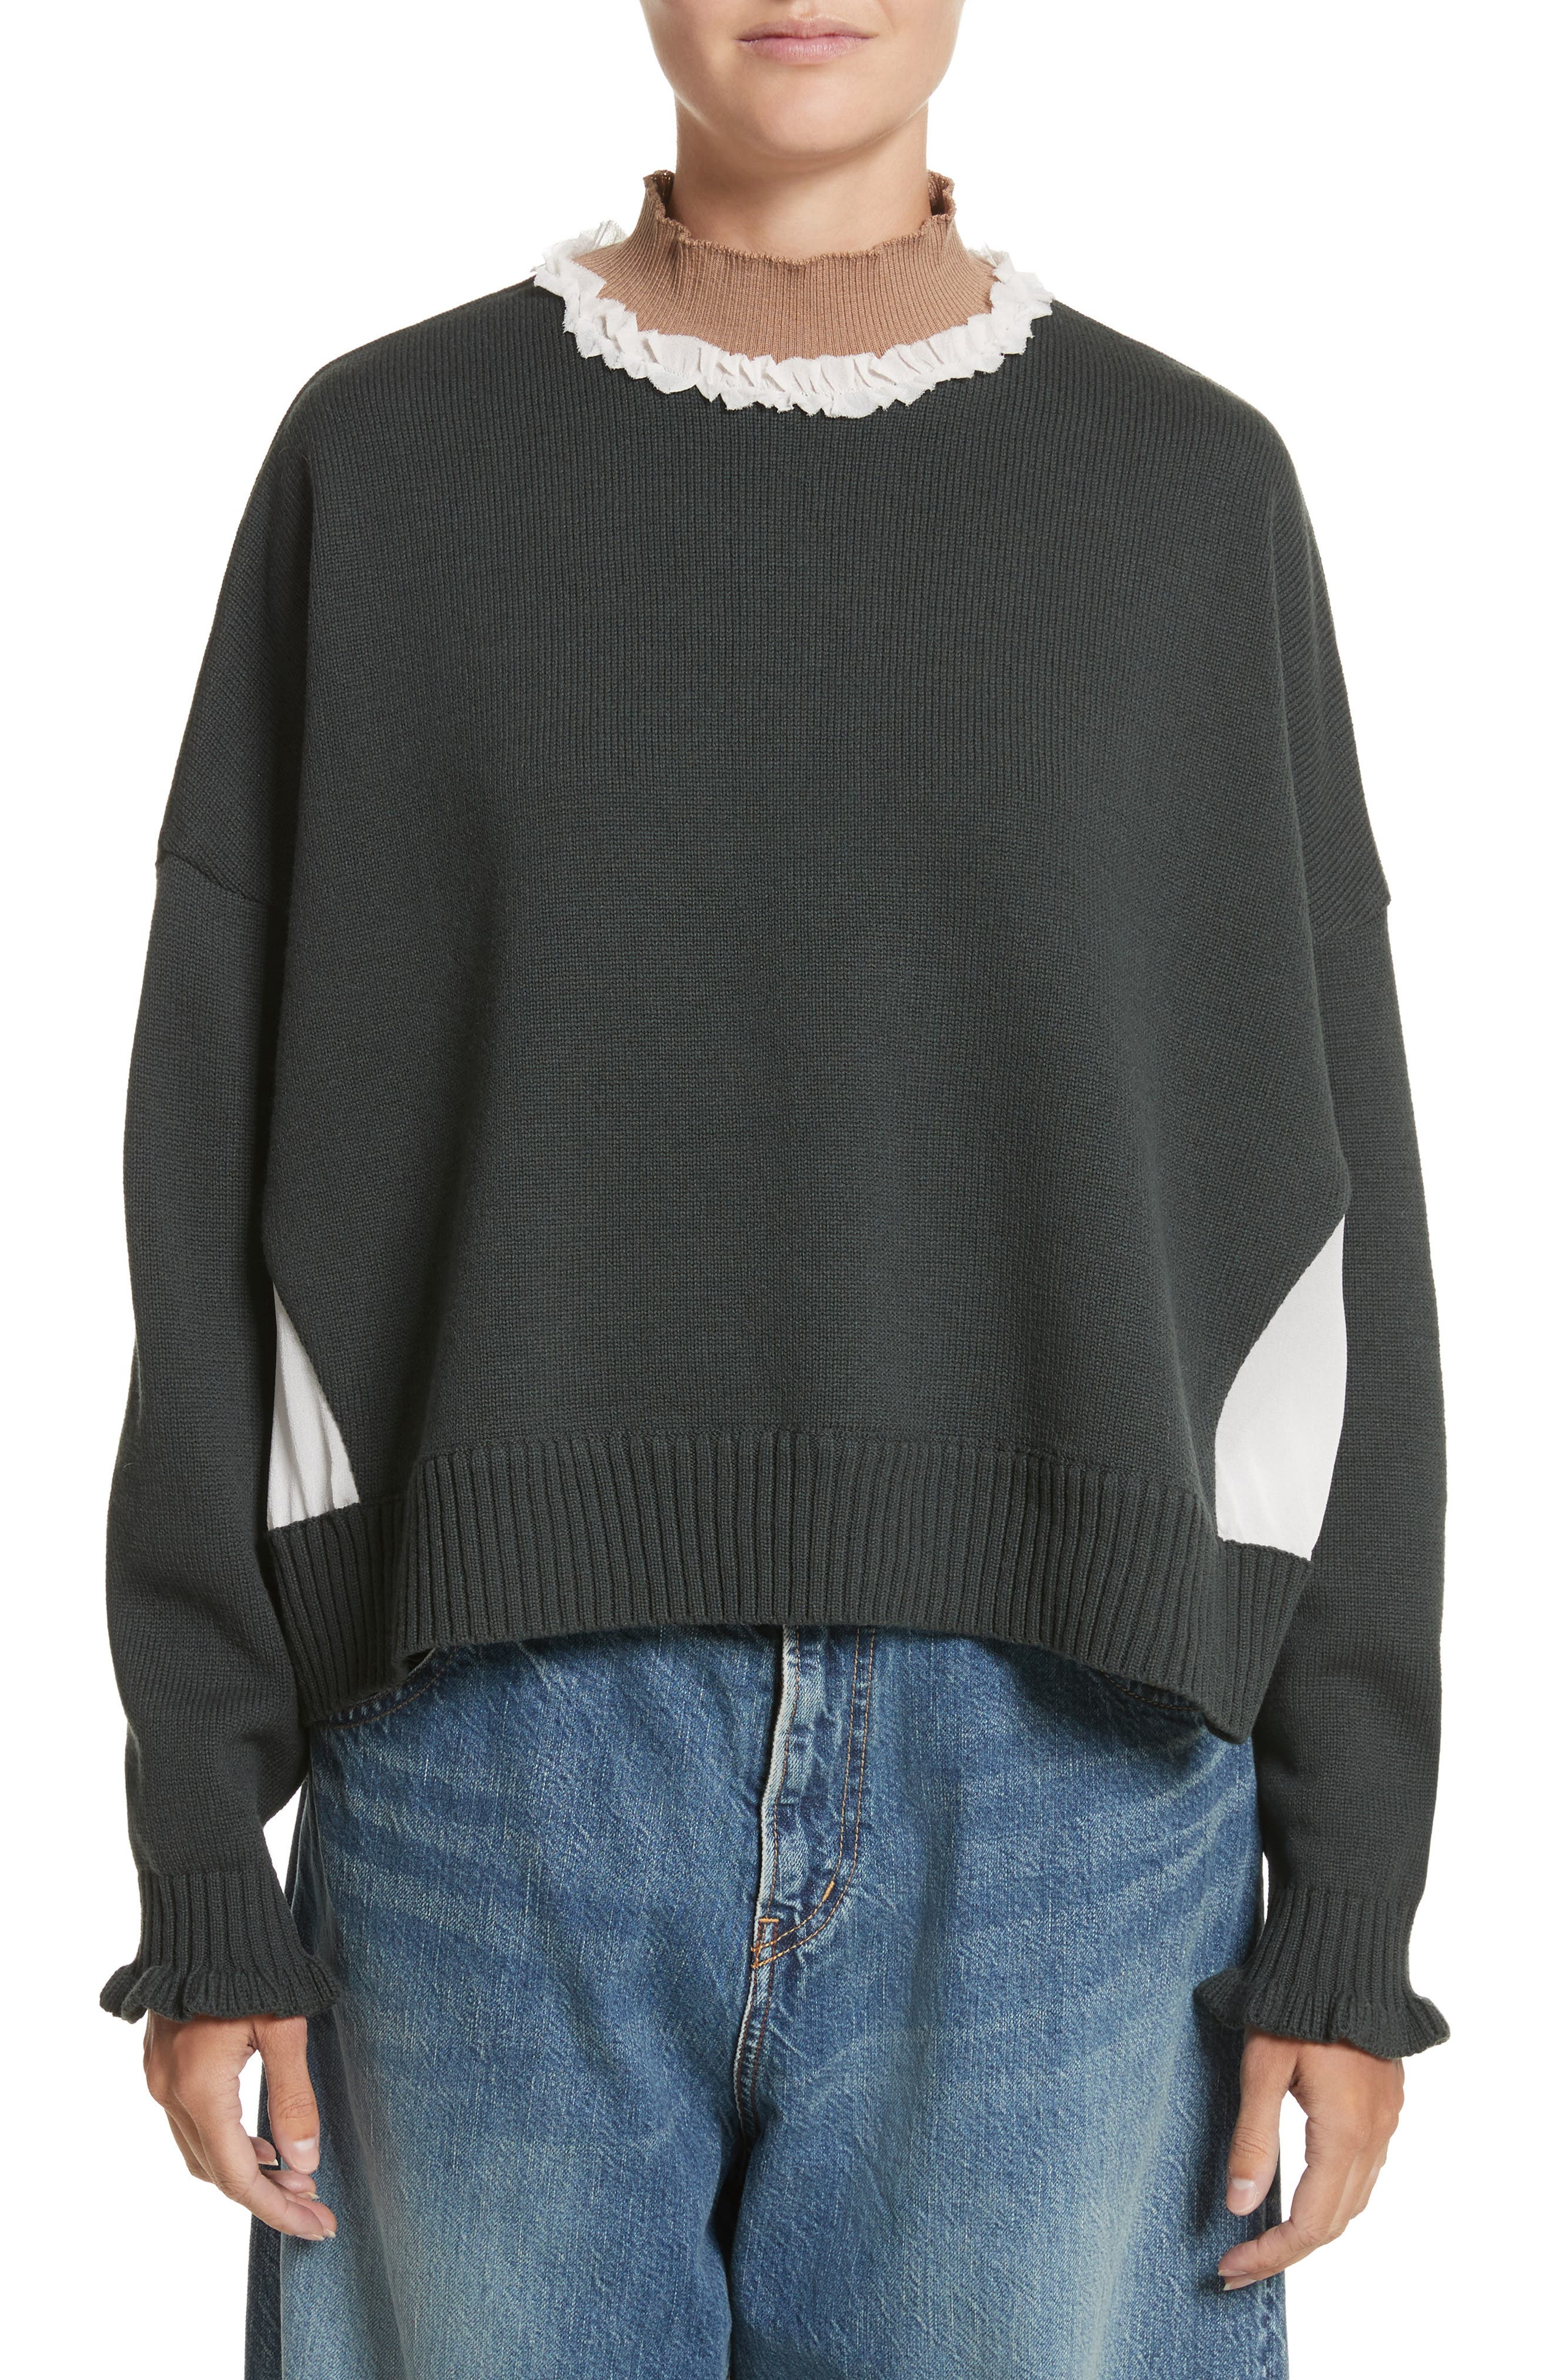 Undercover Ruffled Mock Neck Sweater